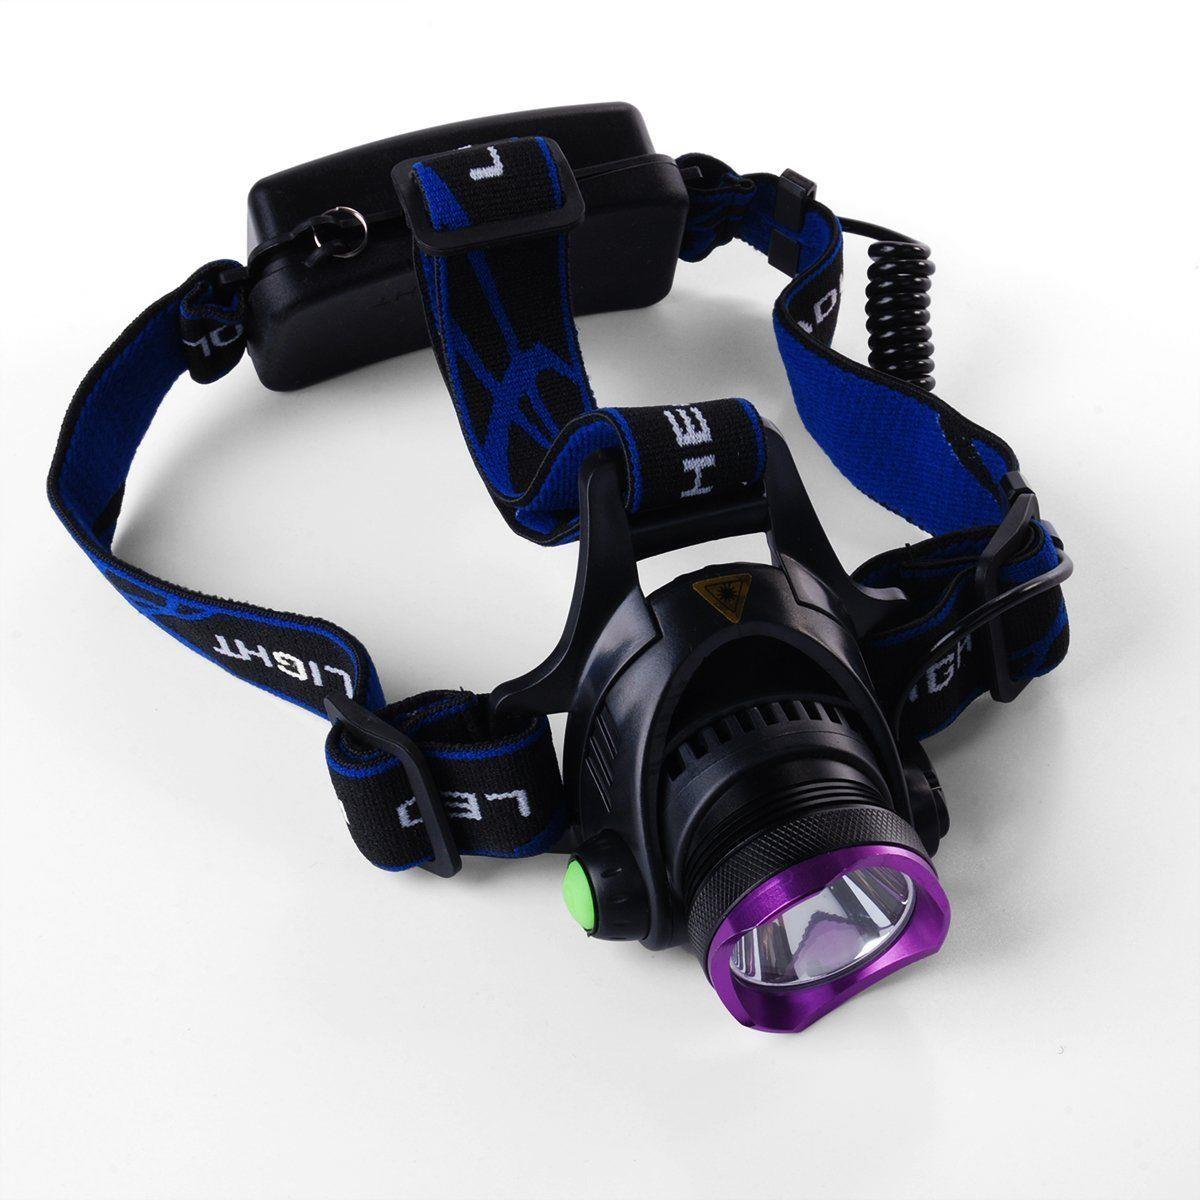 Charger US 5PCS 5000LM LED Headlamp Head Light Torch w// 2x18650 Battery